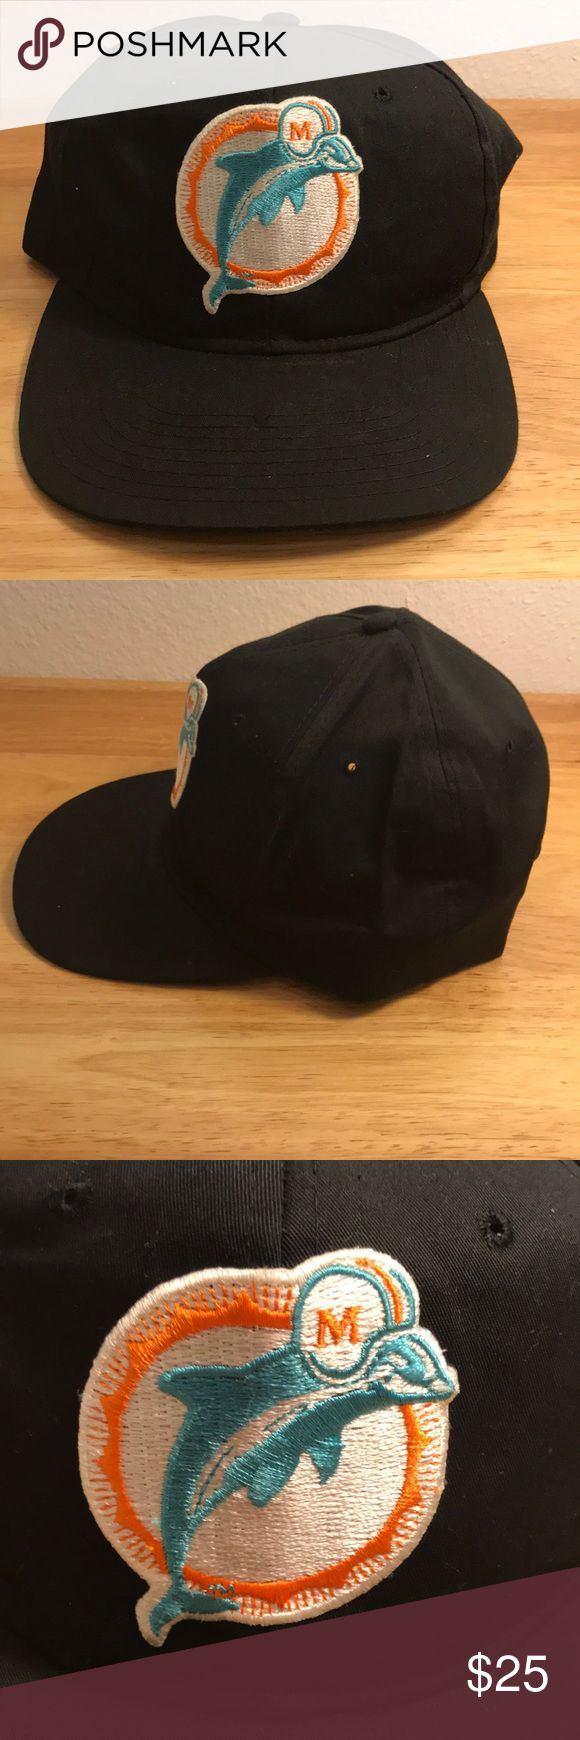 Vintage New Era Miami Dolphins Black Hat Vintage New Era Miami Dolphins Black Hat, Brand New, Never Worn or Used, 🎄WILL SHIP IN ONE DAY🎄All bundles of 2 or more receive 20% off. Closet full of new, used and vintage Vans, Skate and surf companies, jewelry, phone cases, shoes and more. New Era Accessories Hats